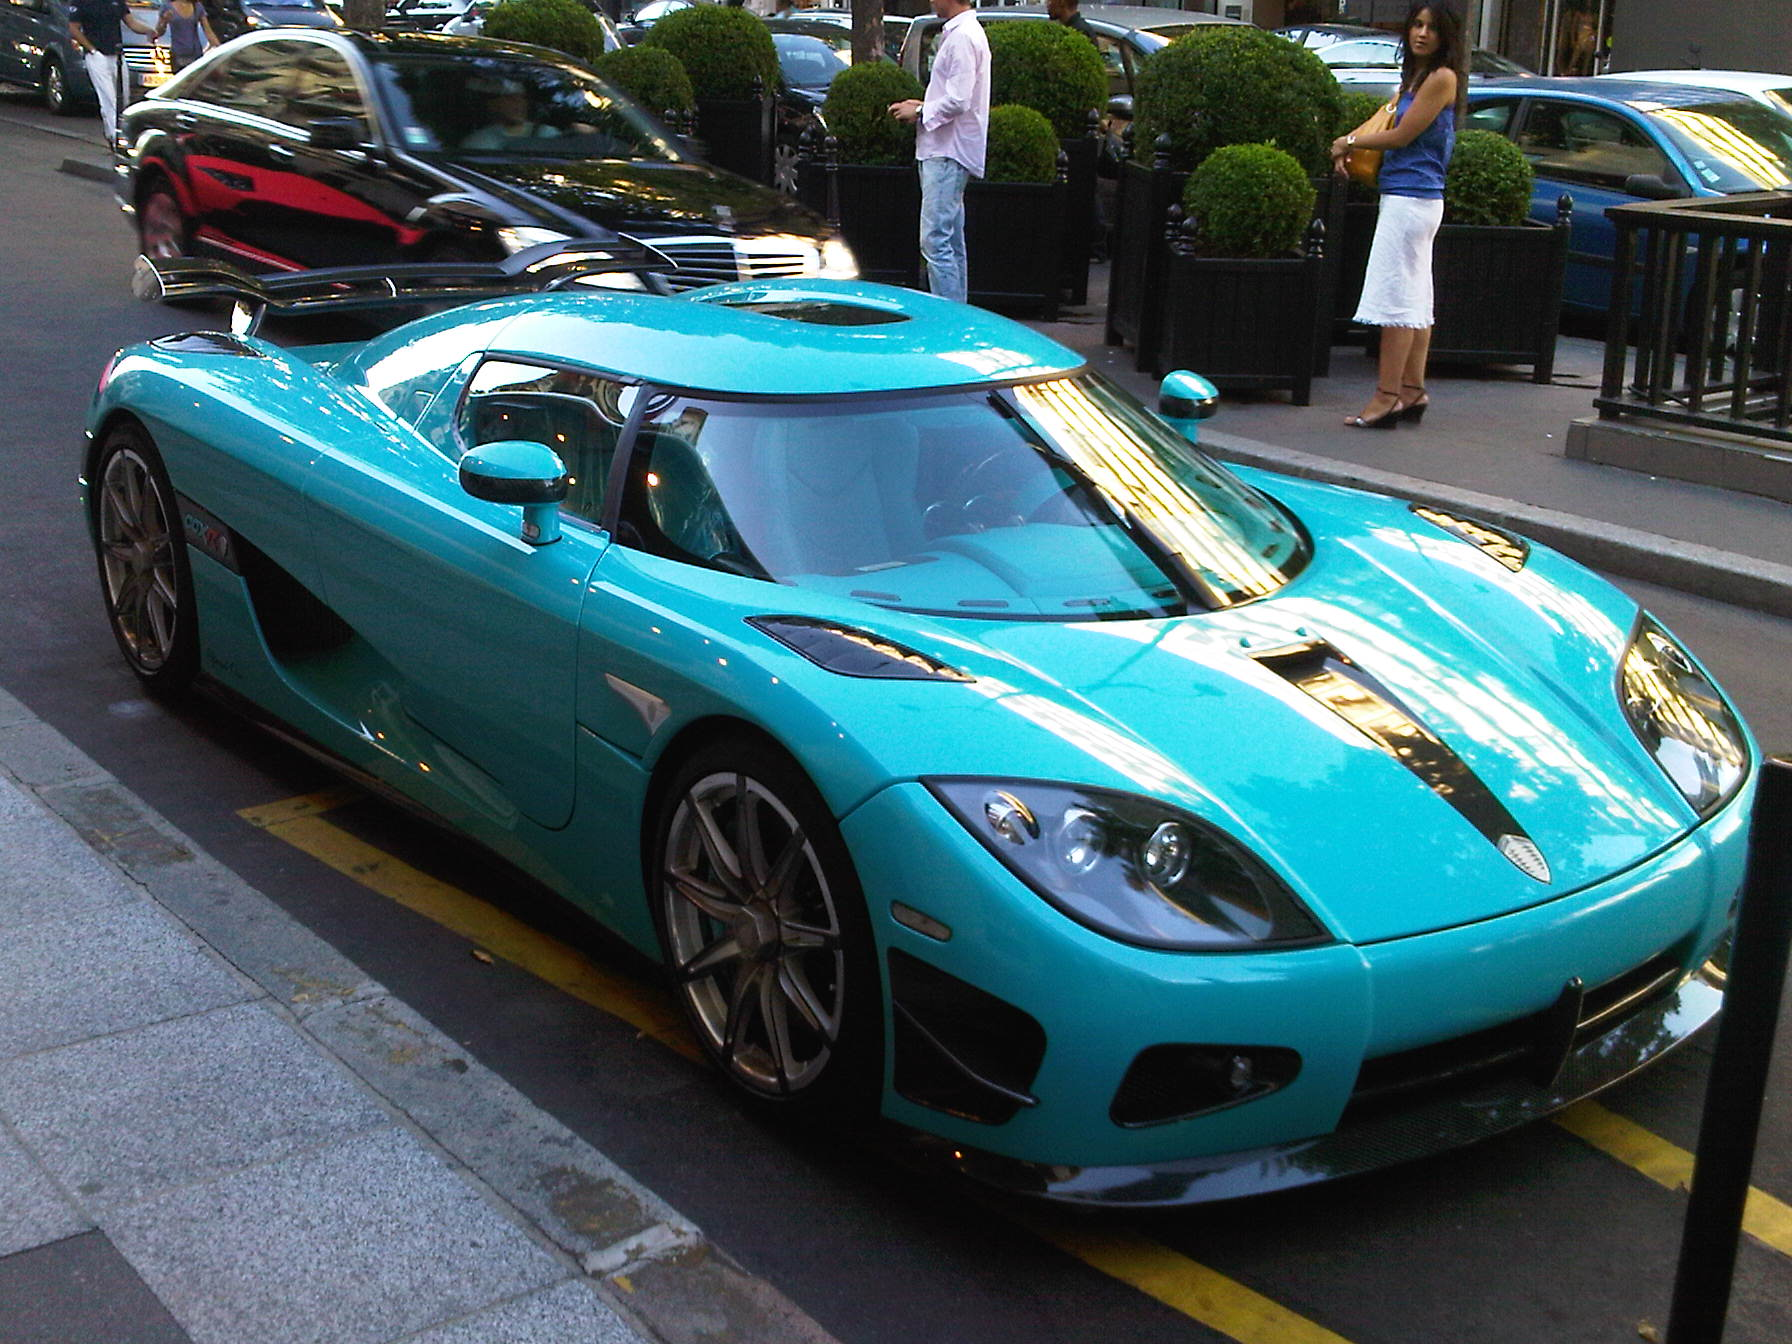 Ccx as well page 4 furthermore Koenigsegg Agera Supercars 6 together with Koenigsegg Agera additionally 7839517930. on koenigsegg agera